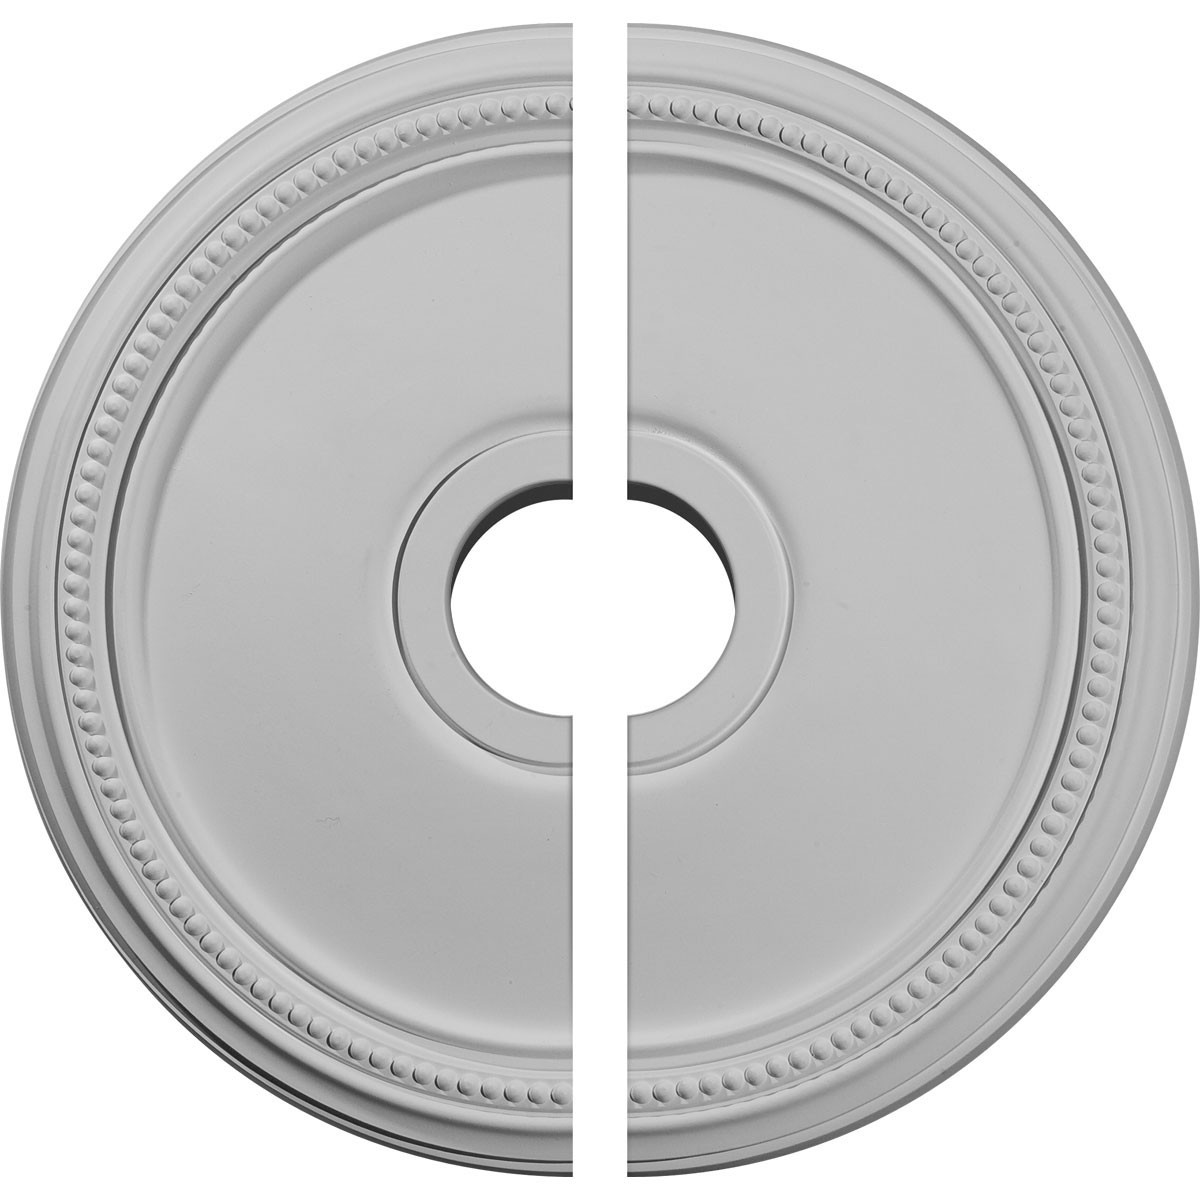 """EM-CM18DI2 - 18""""OD x 3 5/8""""ID x 1 1/8""""P Diane Ceiling Medallion, Two Piece (Fits Canopies up to 5 3/8"""")"""